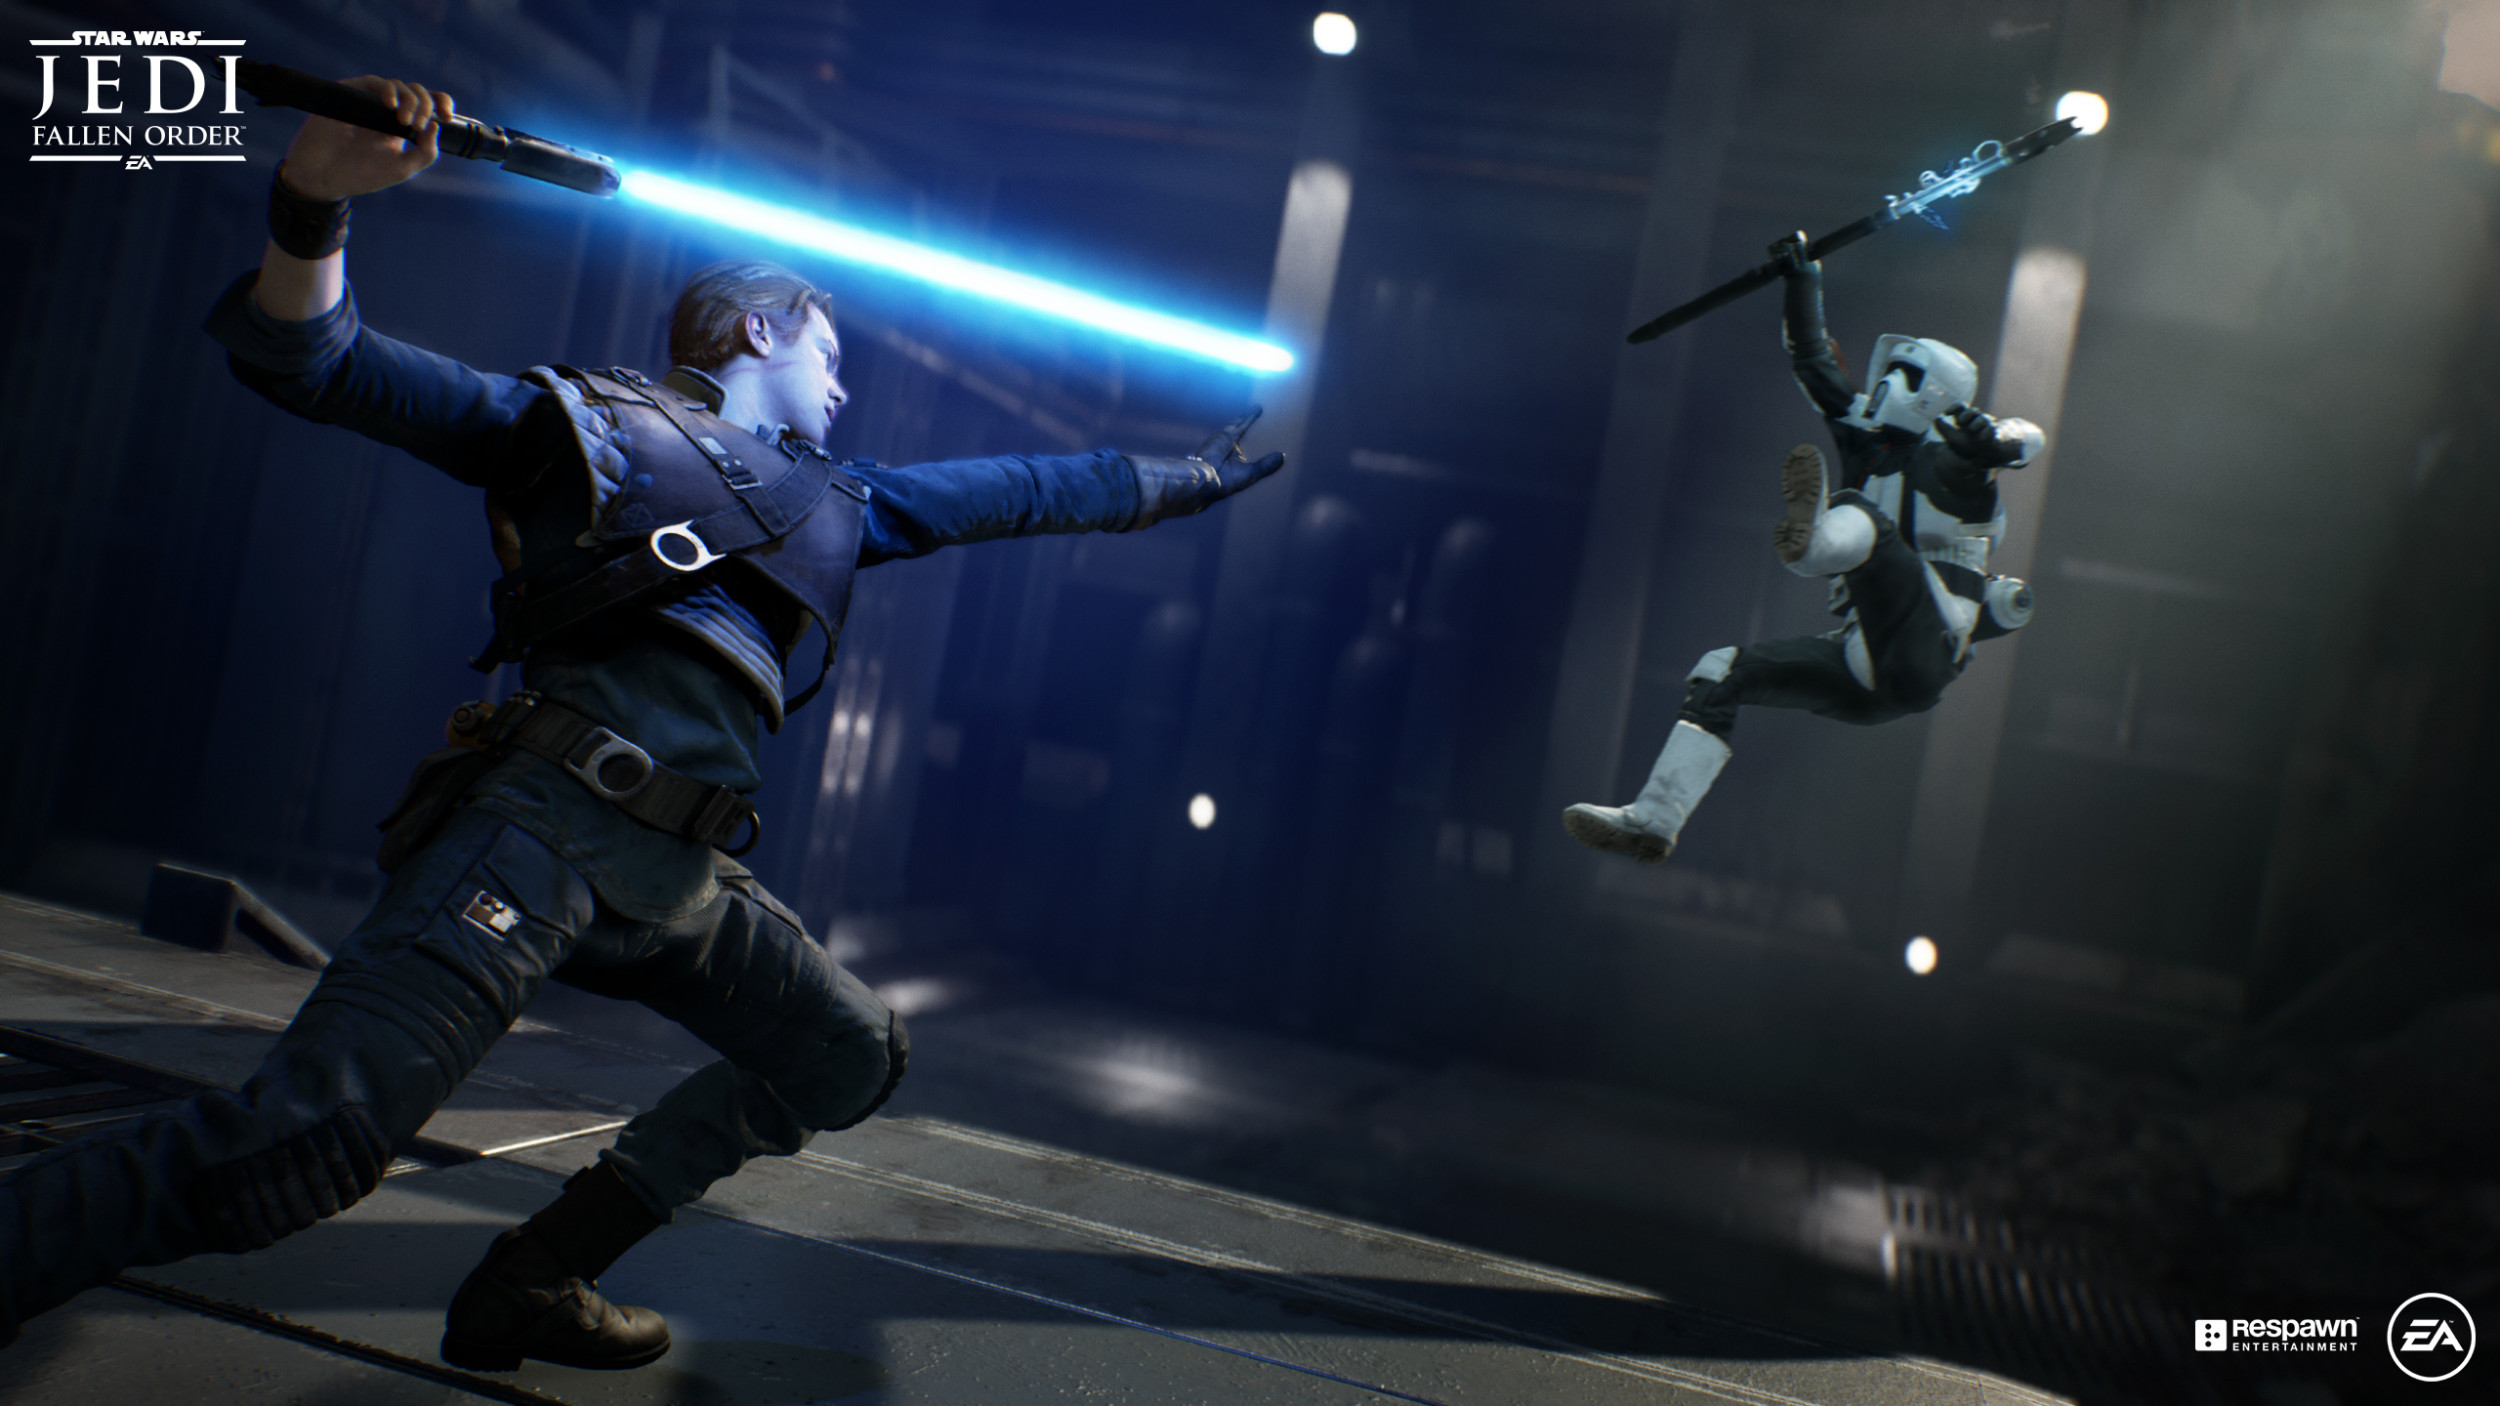 Star Wars Jedi Fallen Order Release Time When Can I Download On Ps4 Xbox Pc